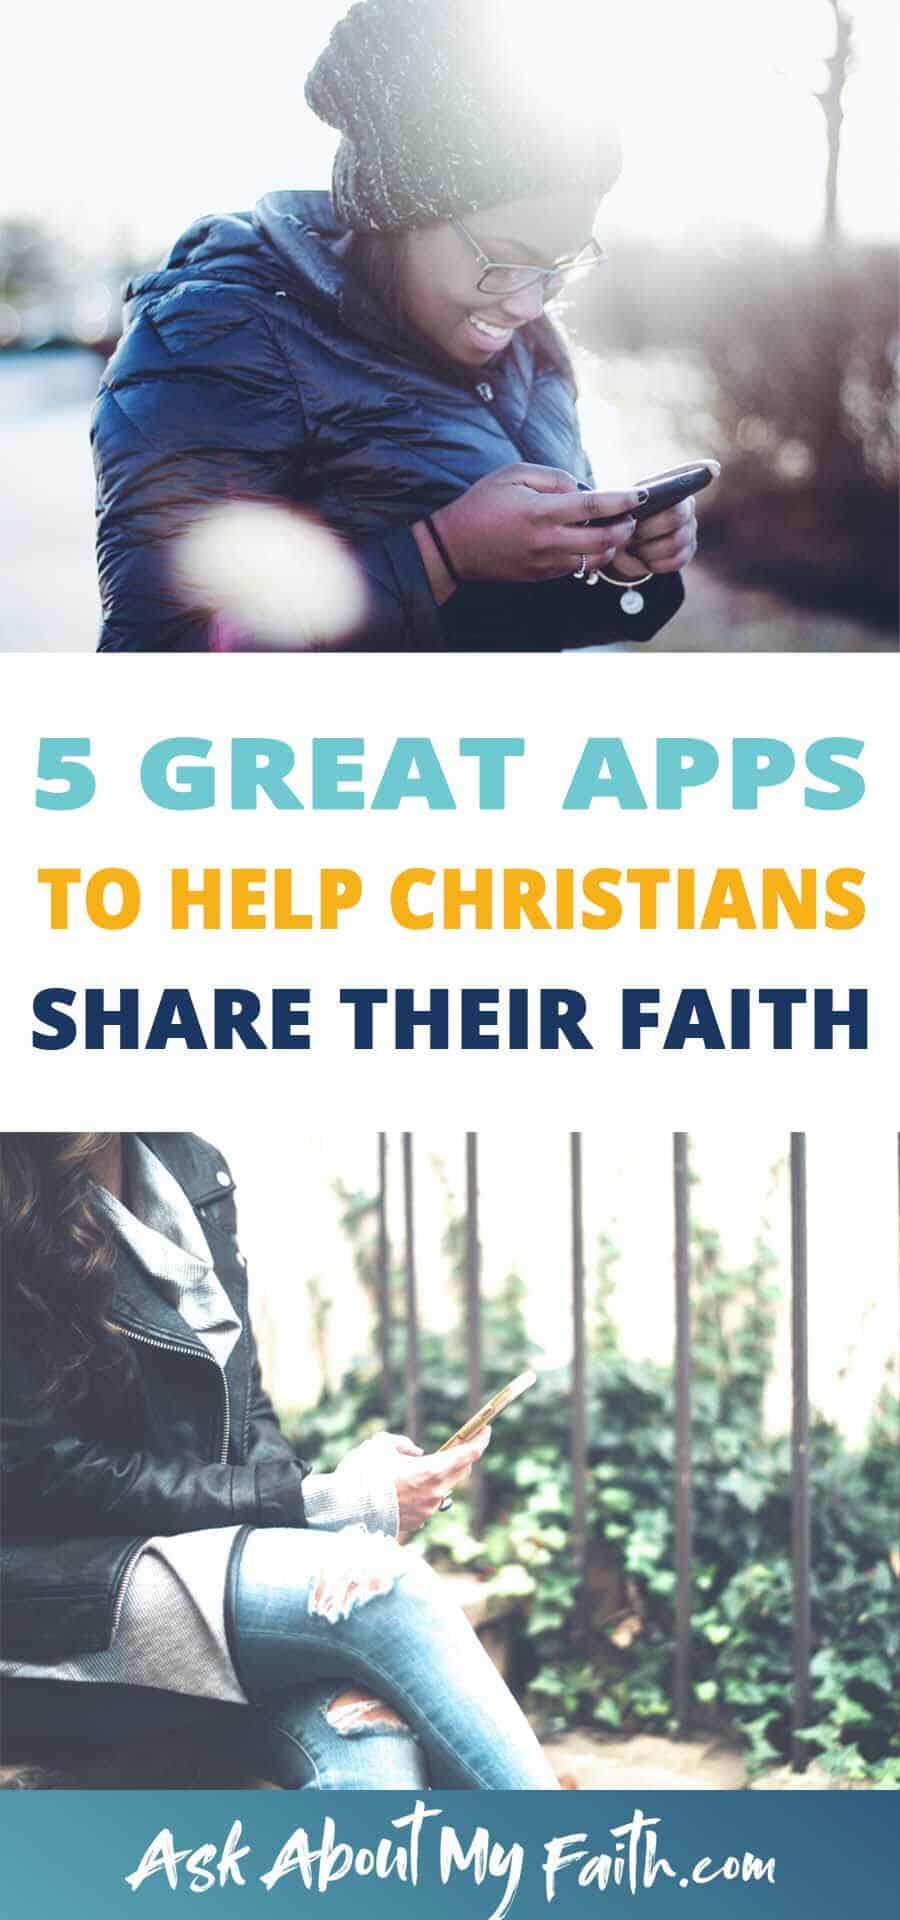 5 Great Apps to Help Christians Share Their Faith | Christianity | Evangelism